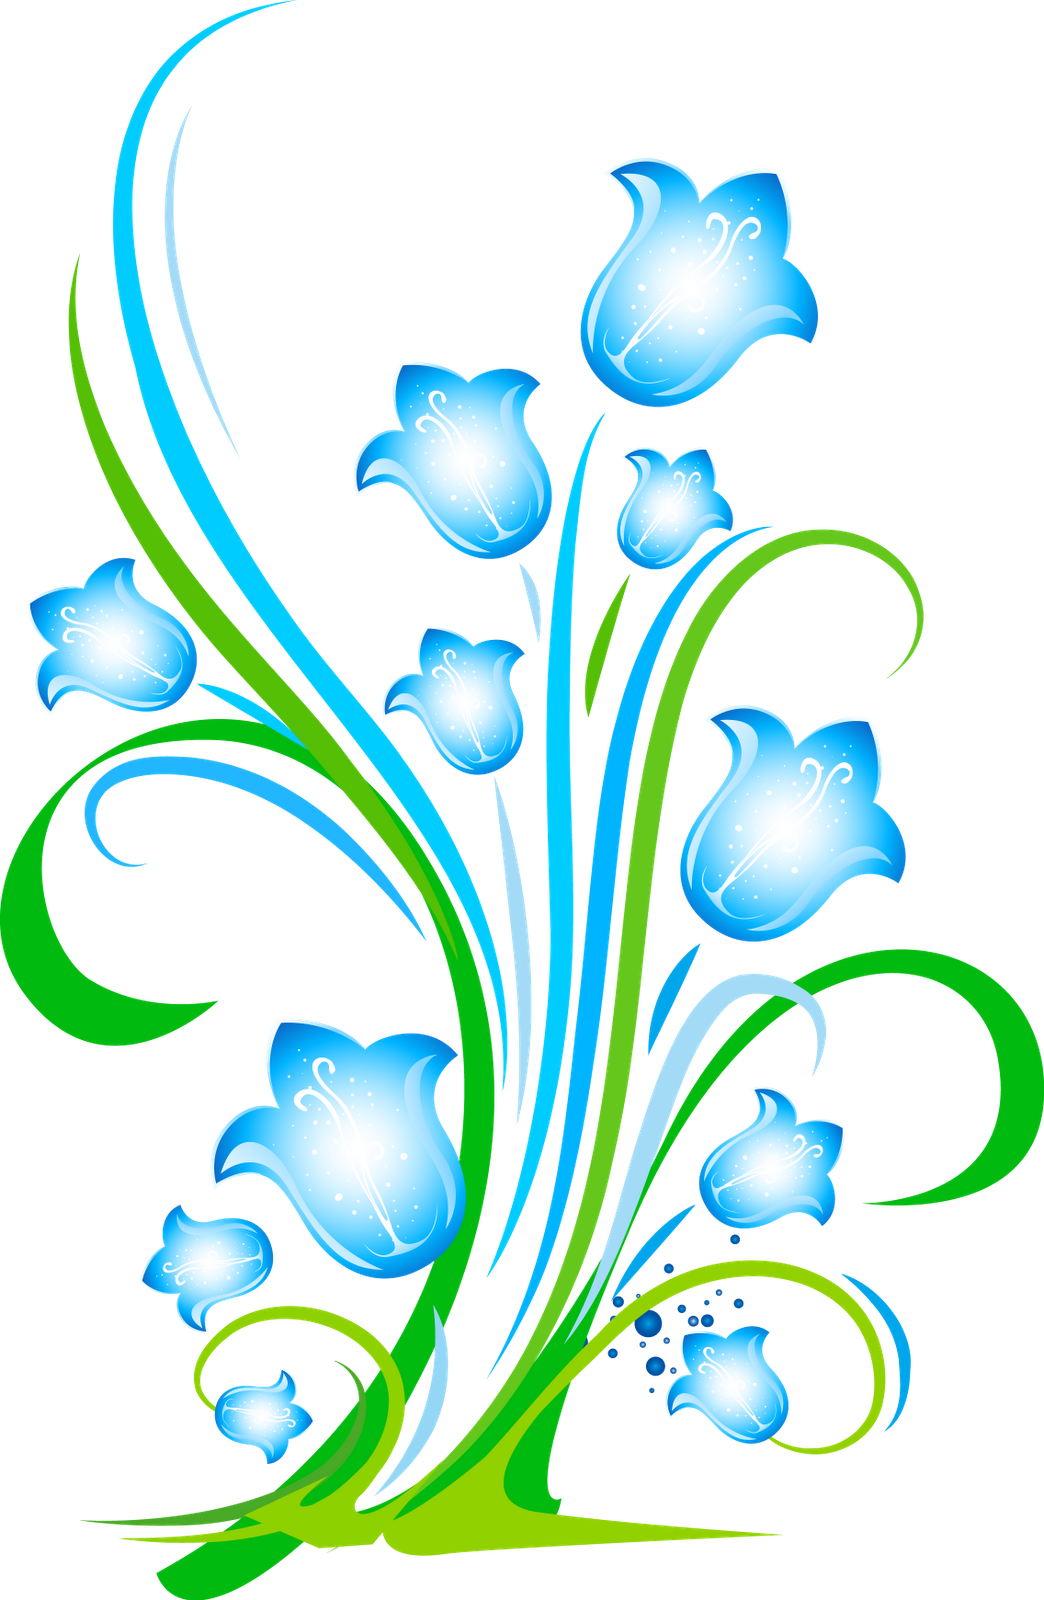 Adobe photoshop floral flower. Swirl vector png